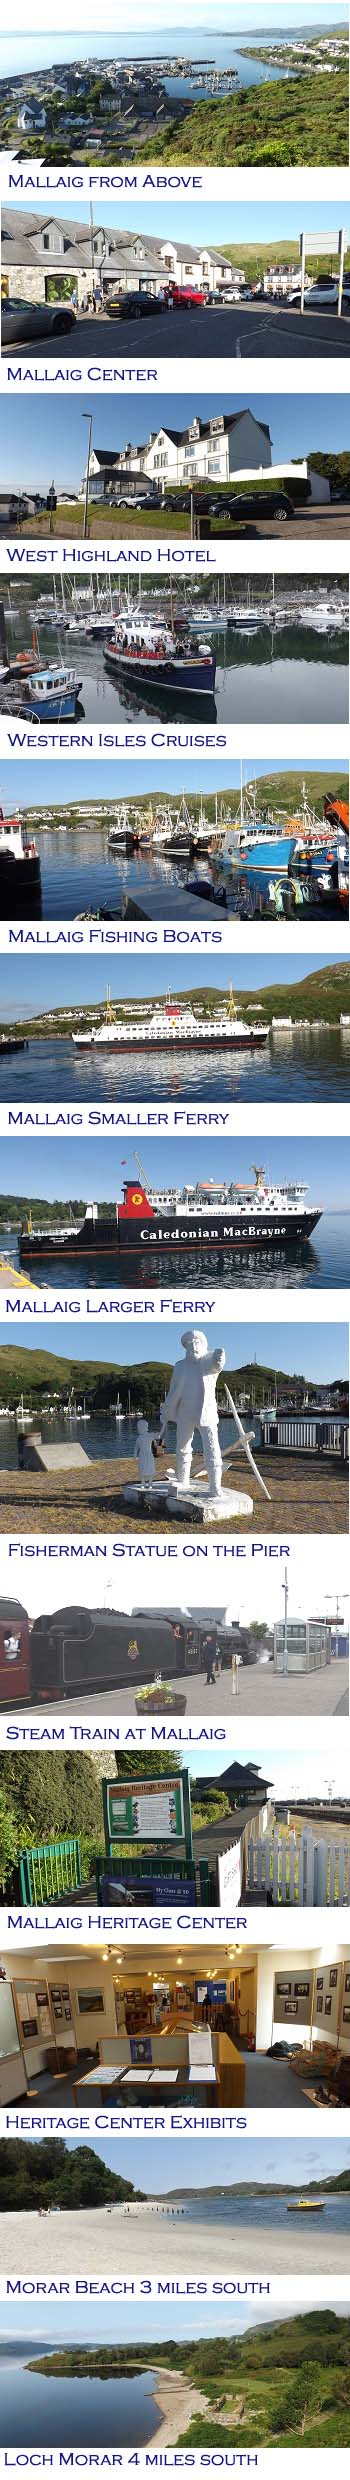 Mallaig Photos